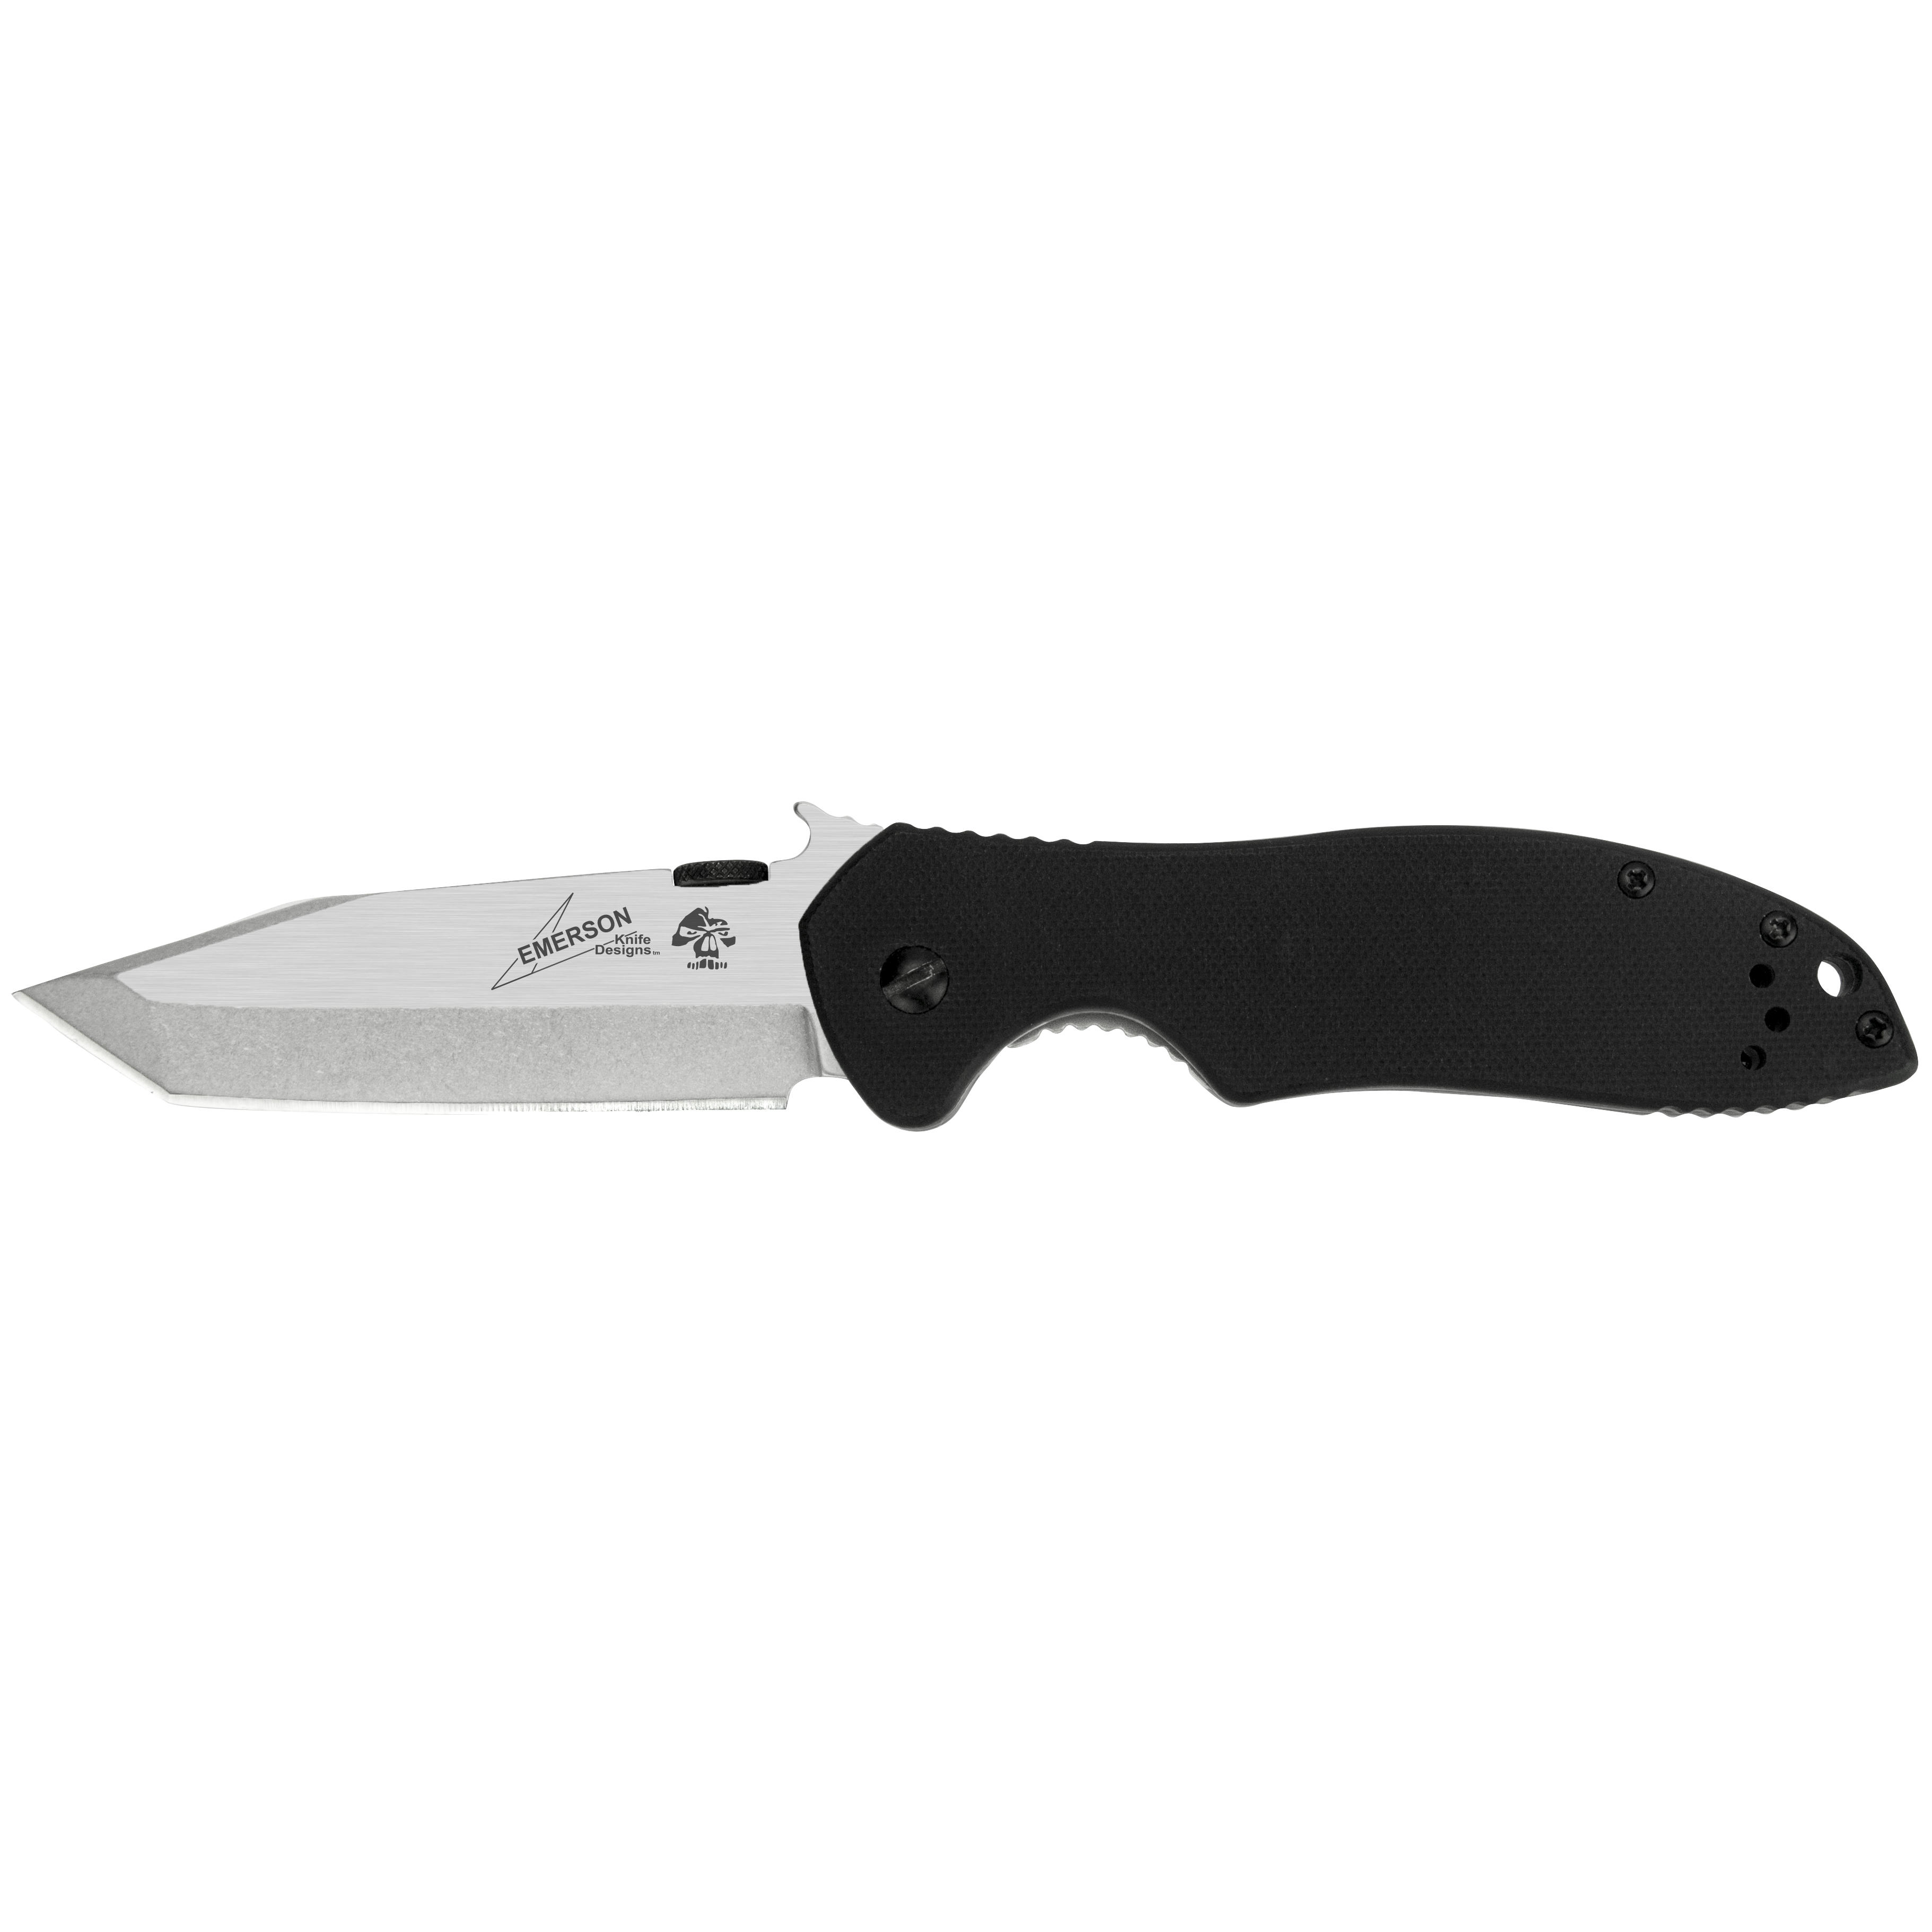 Emerson By Kershaw Modified Tanto Pocket Knife CQC-7K 6034T